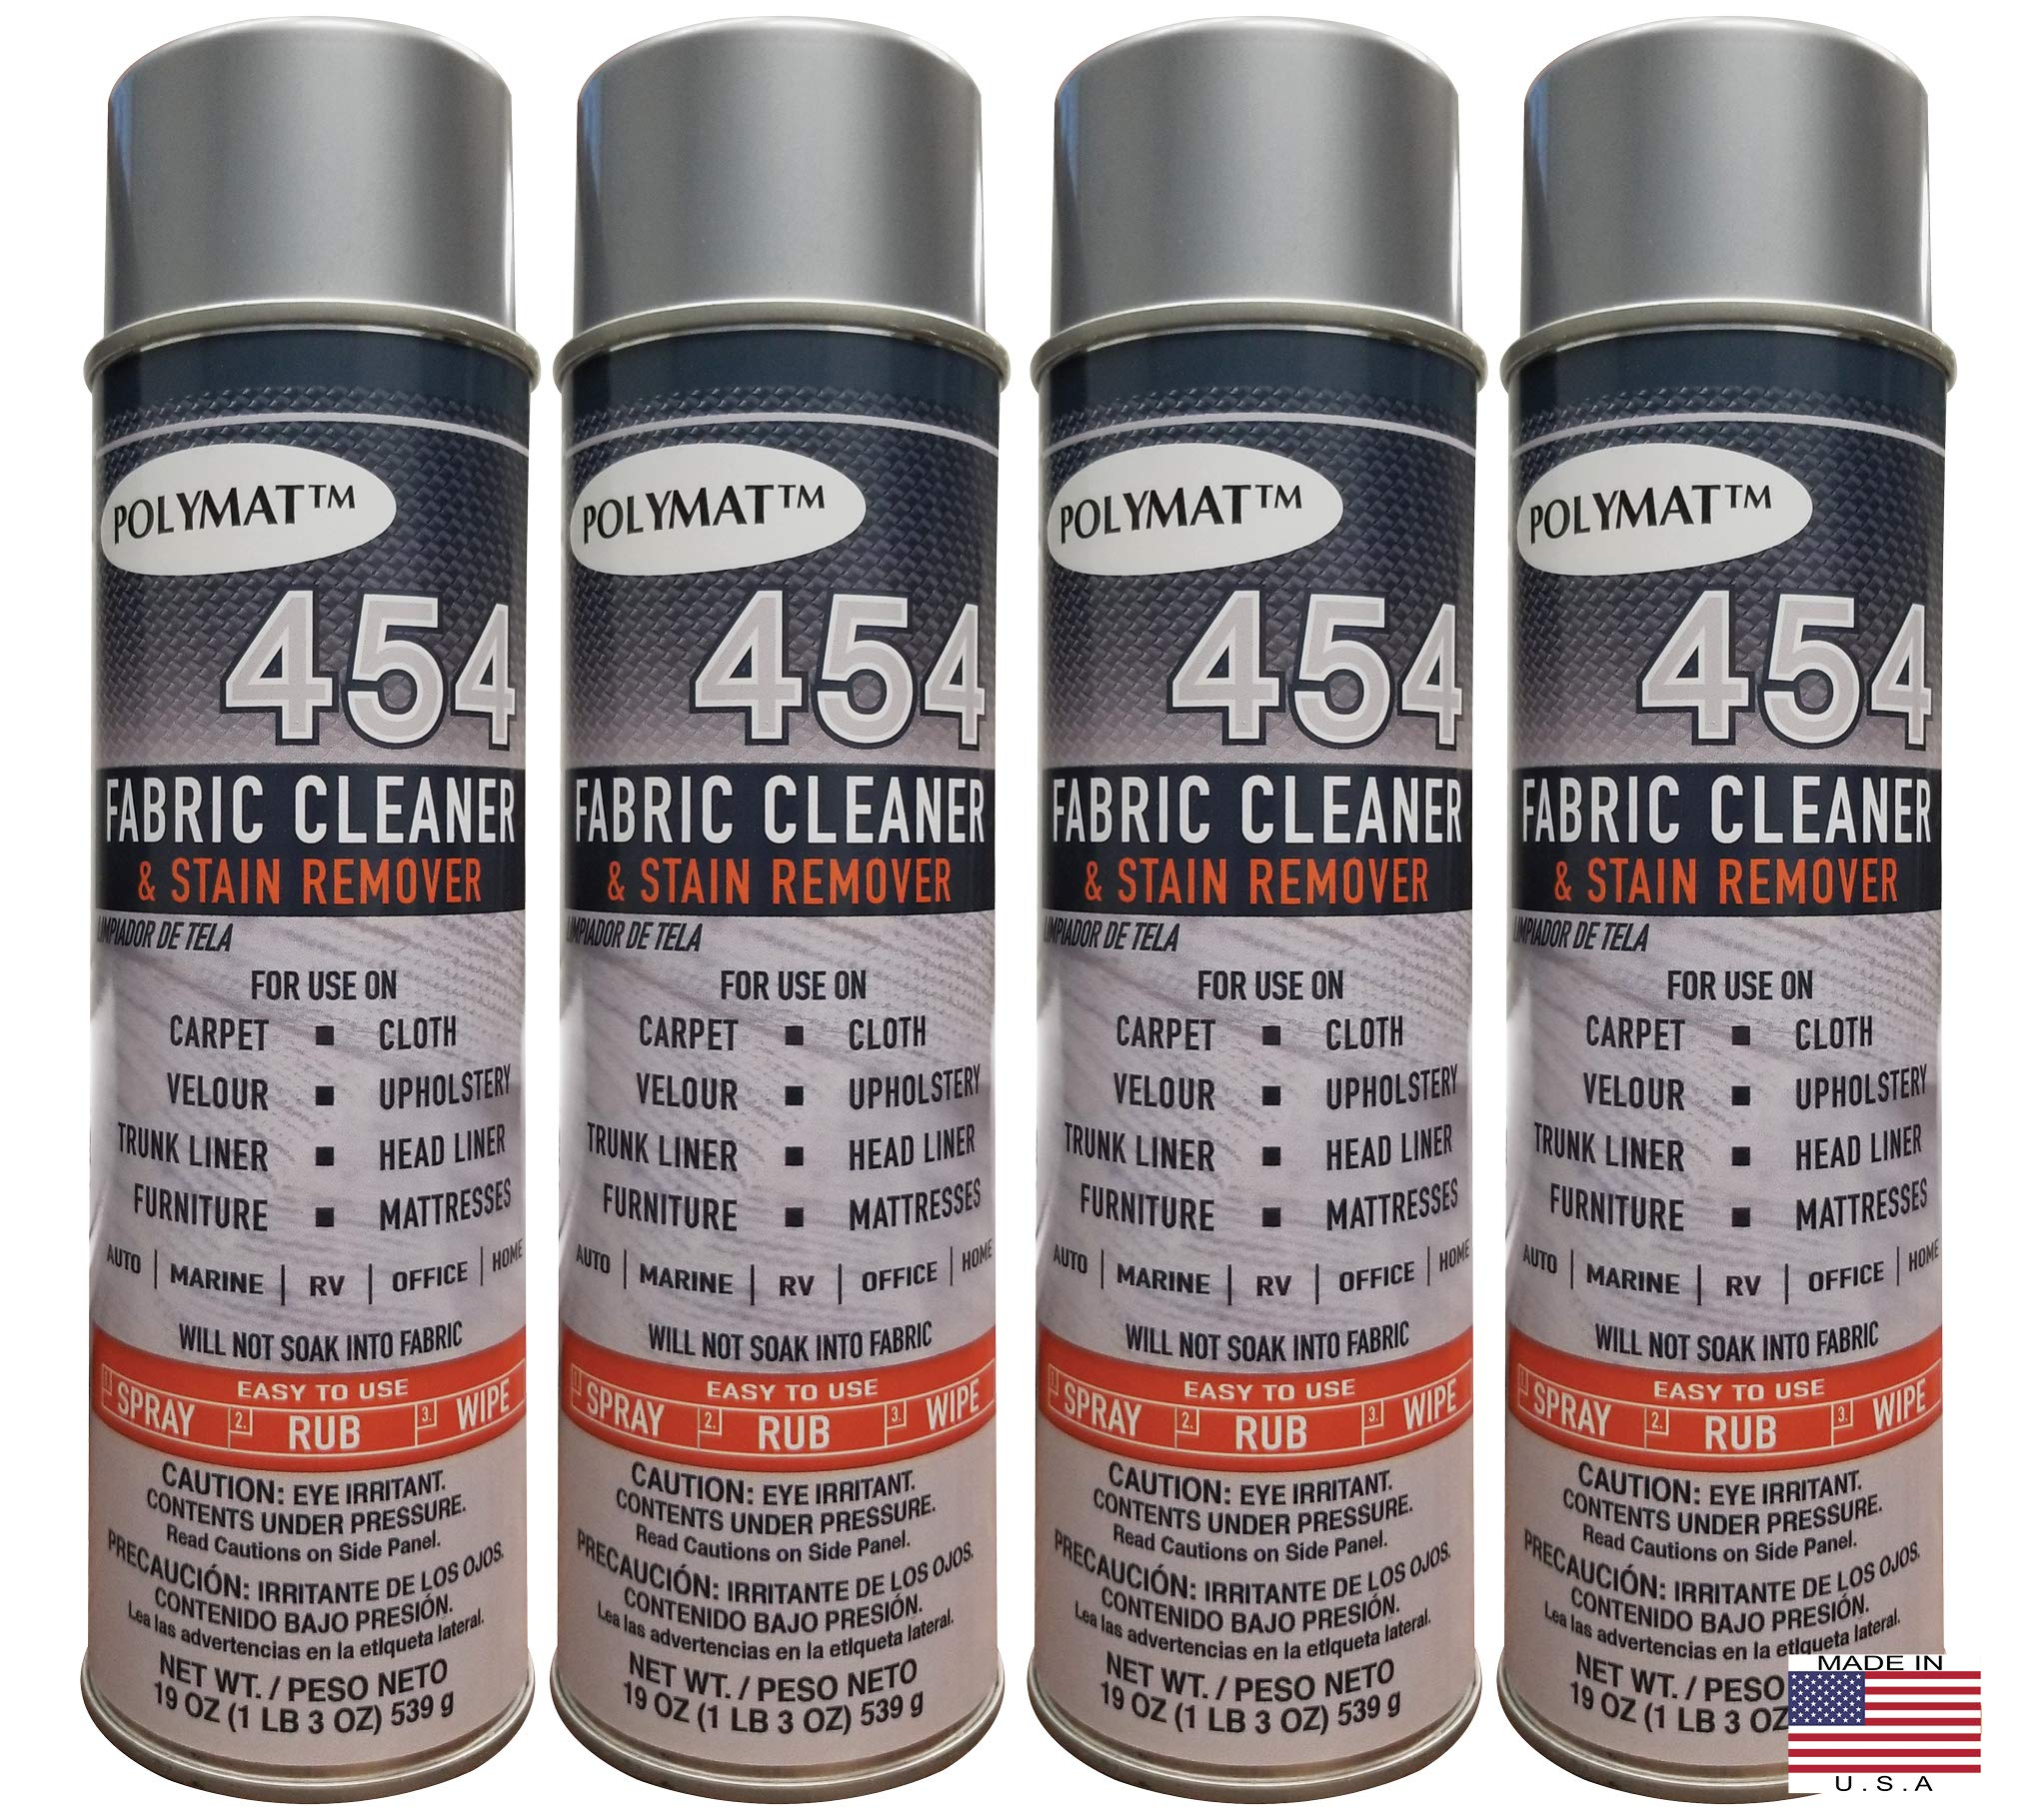 Polymat QTY4 454 Fabric Cleaner & Stain Remover Detailing Commercial RV Home